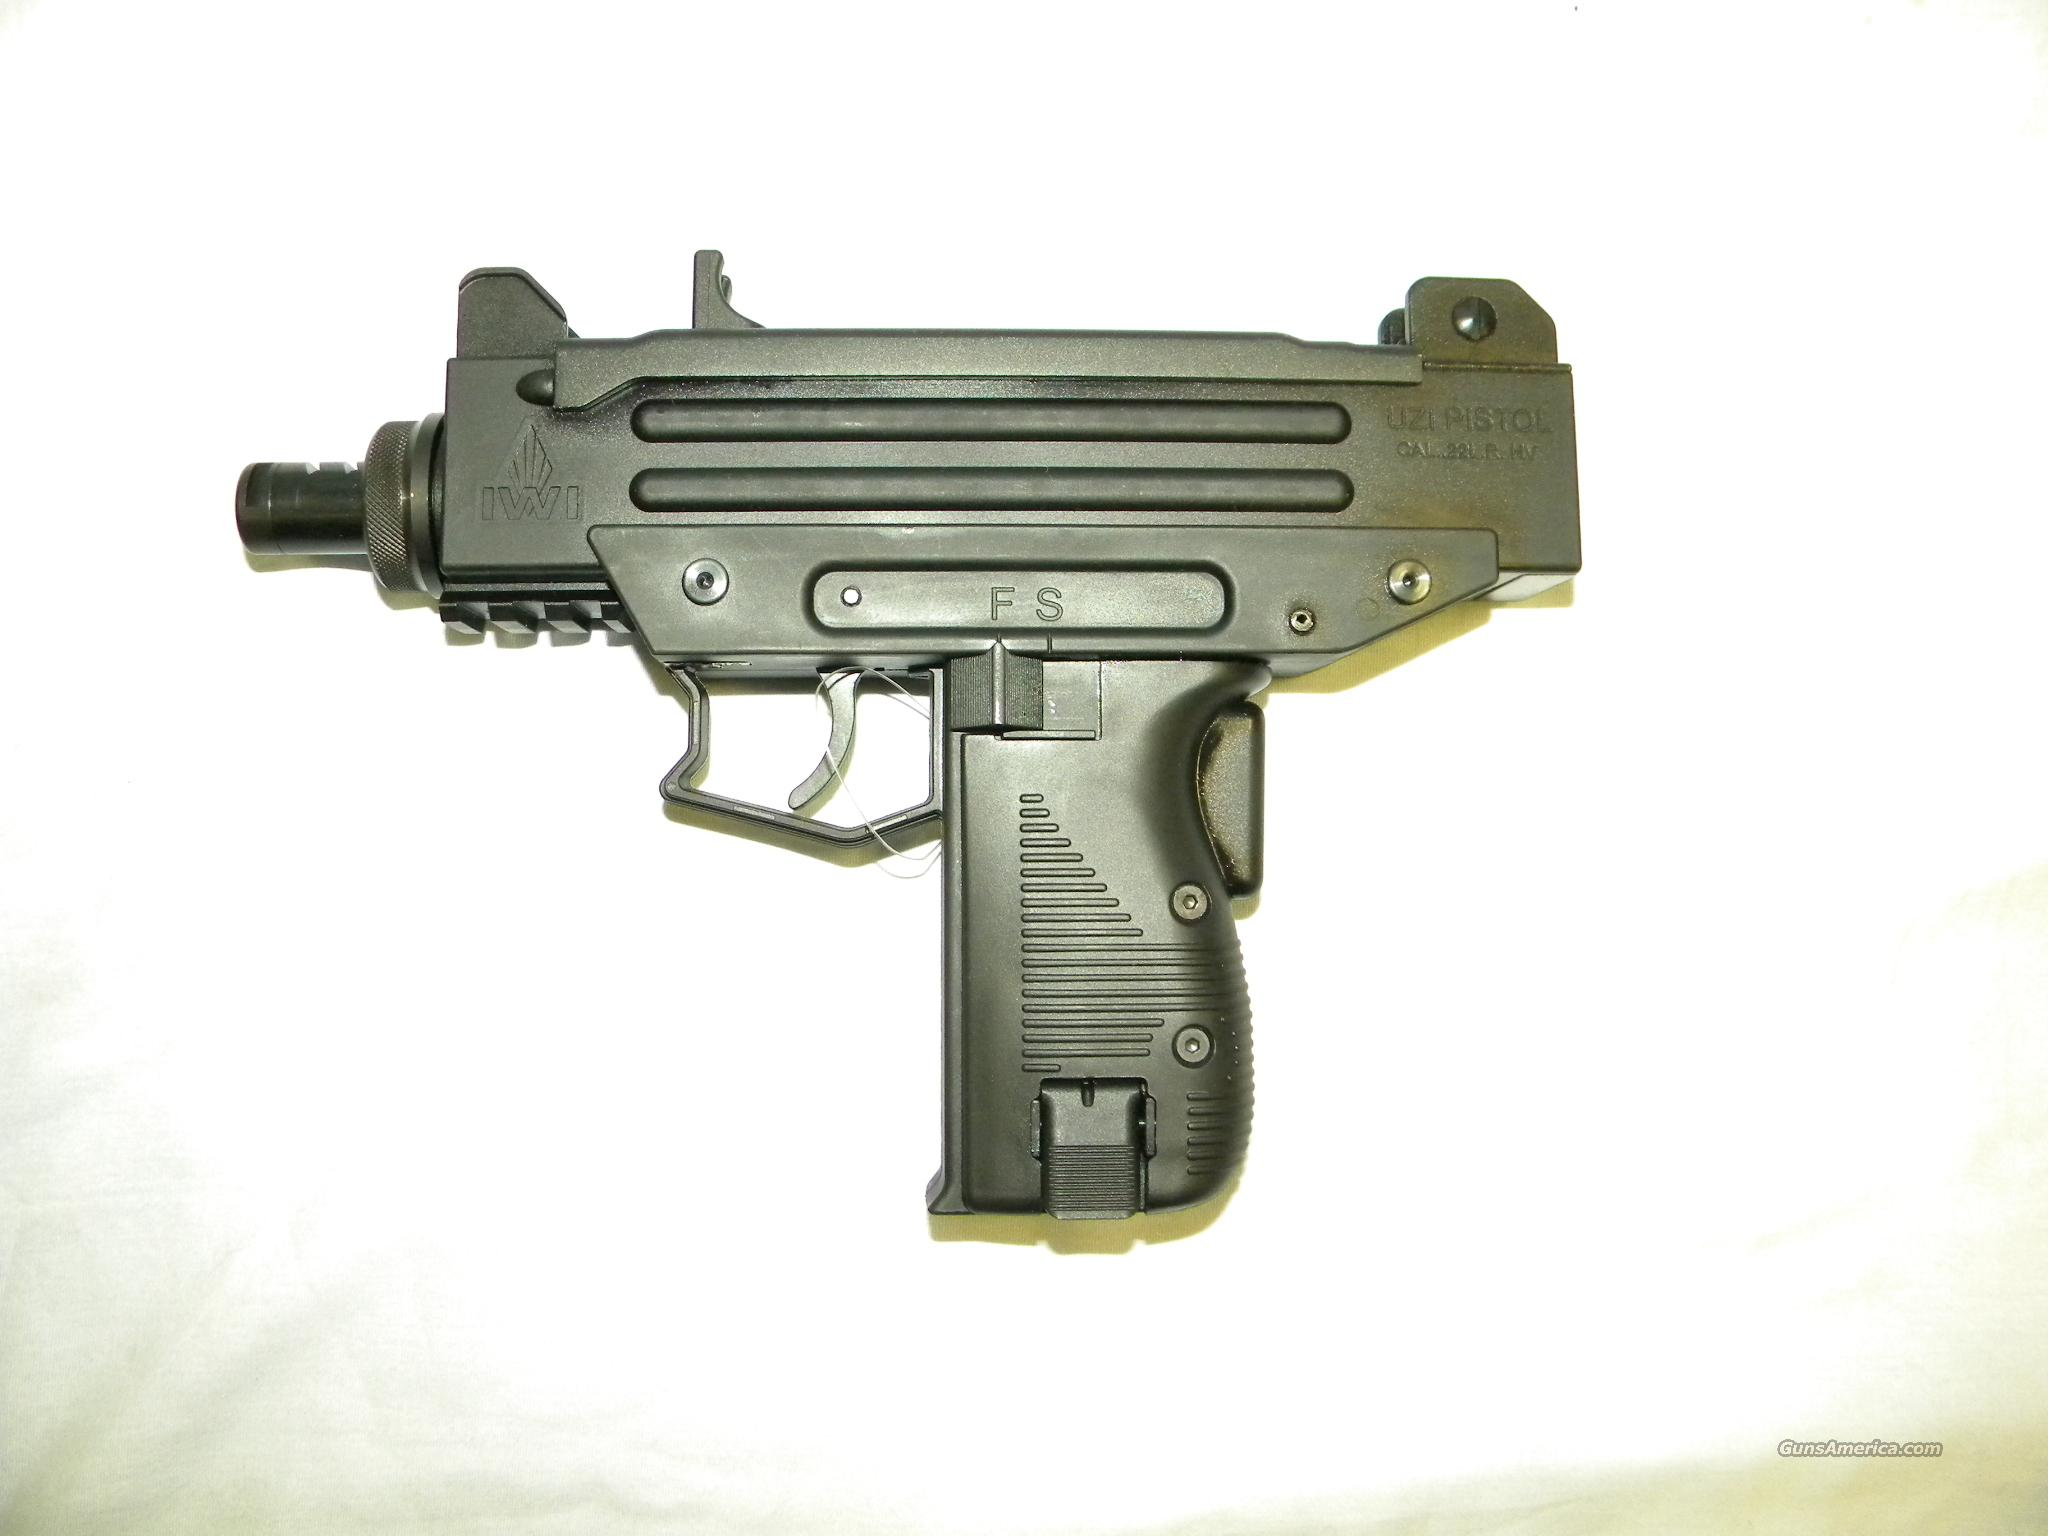 I.W.I. Uzi Pistol, .22 LR, Made In Germany By Walter  Guns > Pistols > IJ Misc Pistols